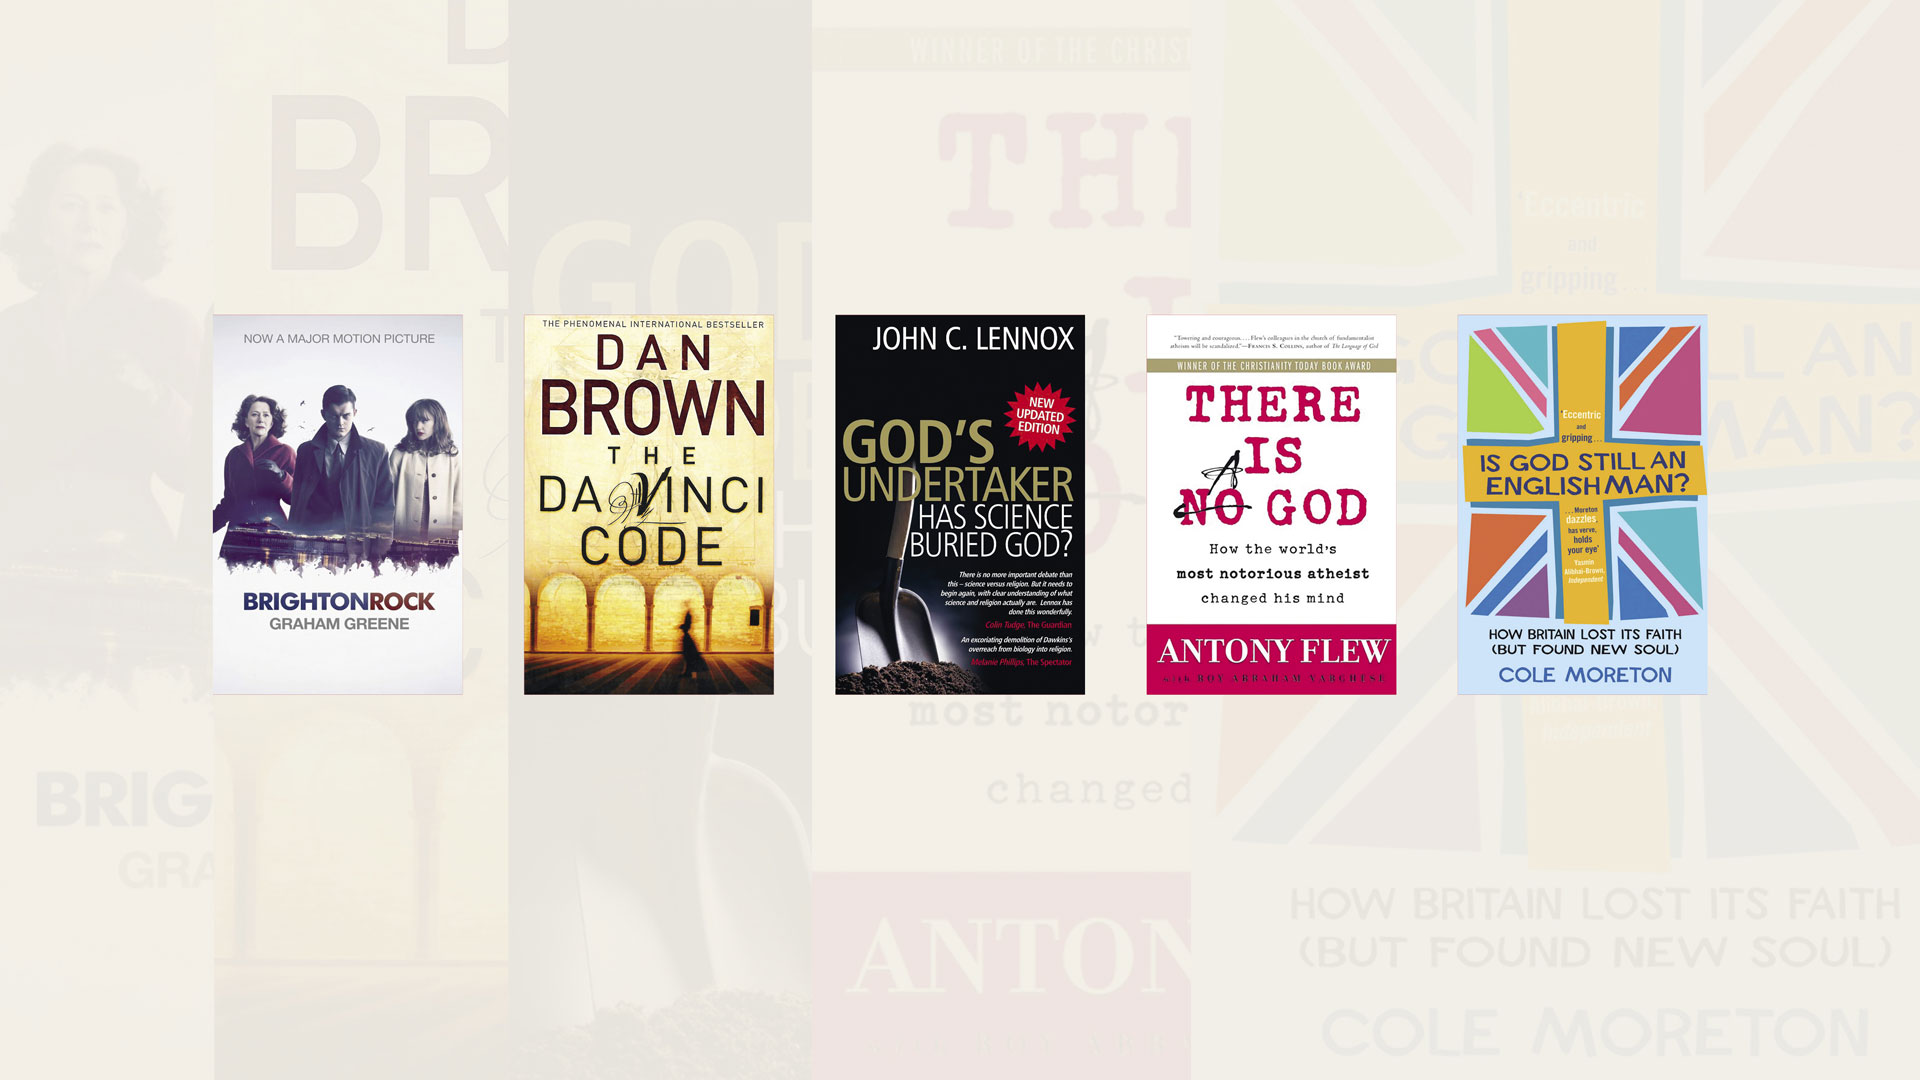 Top 5 books about God, as chosen by Peter James